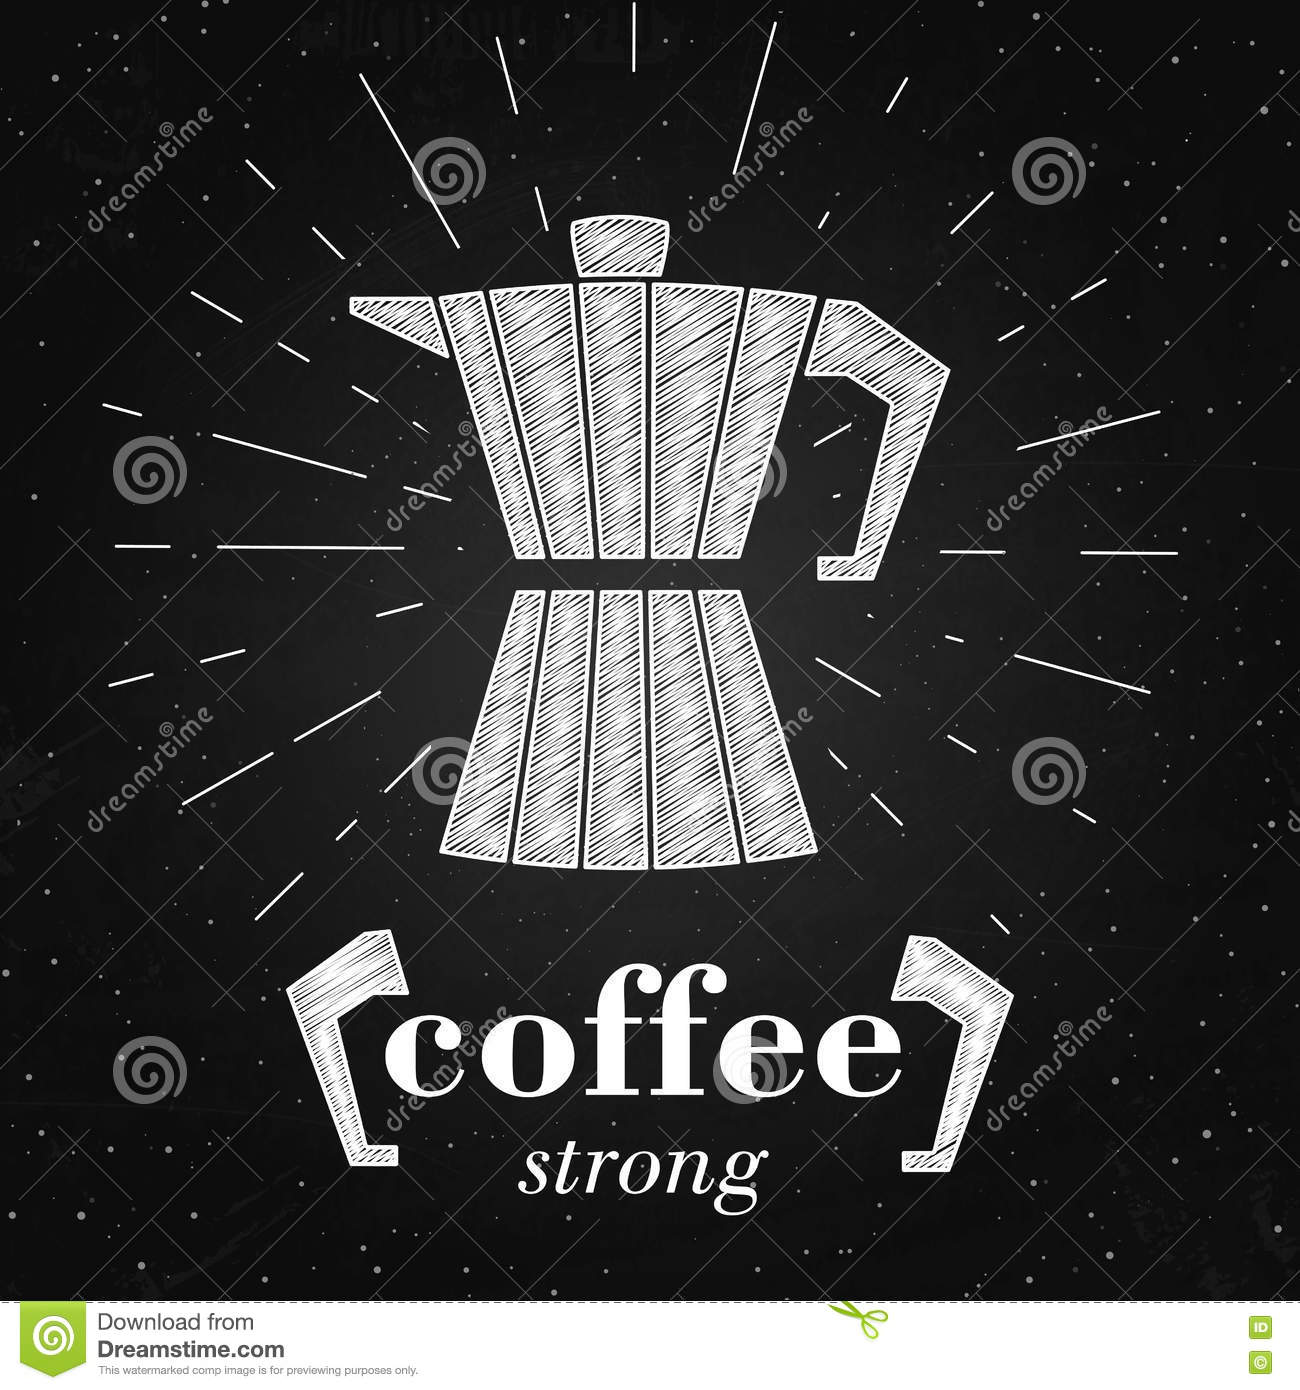 Image of: Fantastic Alfabet Vector Illustration Of Coffee Maker Typography Poster Or Banner On The Chalkboard Coffee Strong Quote Dreamstimecom Vector Illustration Of Coffee Maker Typography Poster Or Banner On